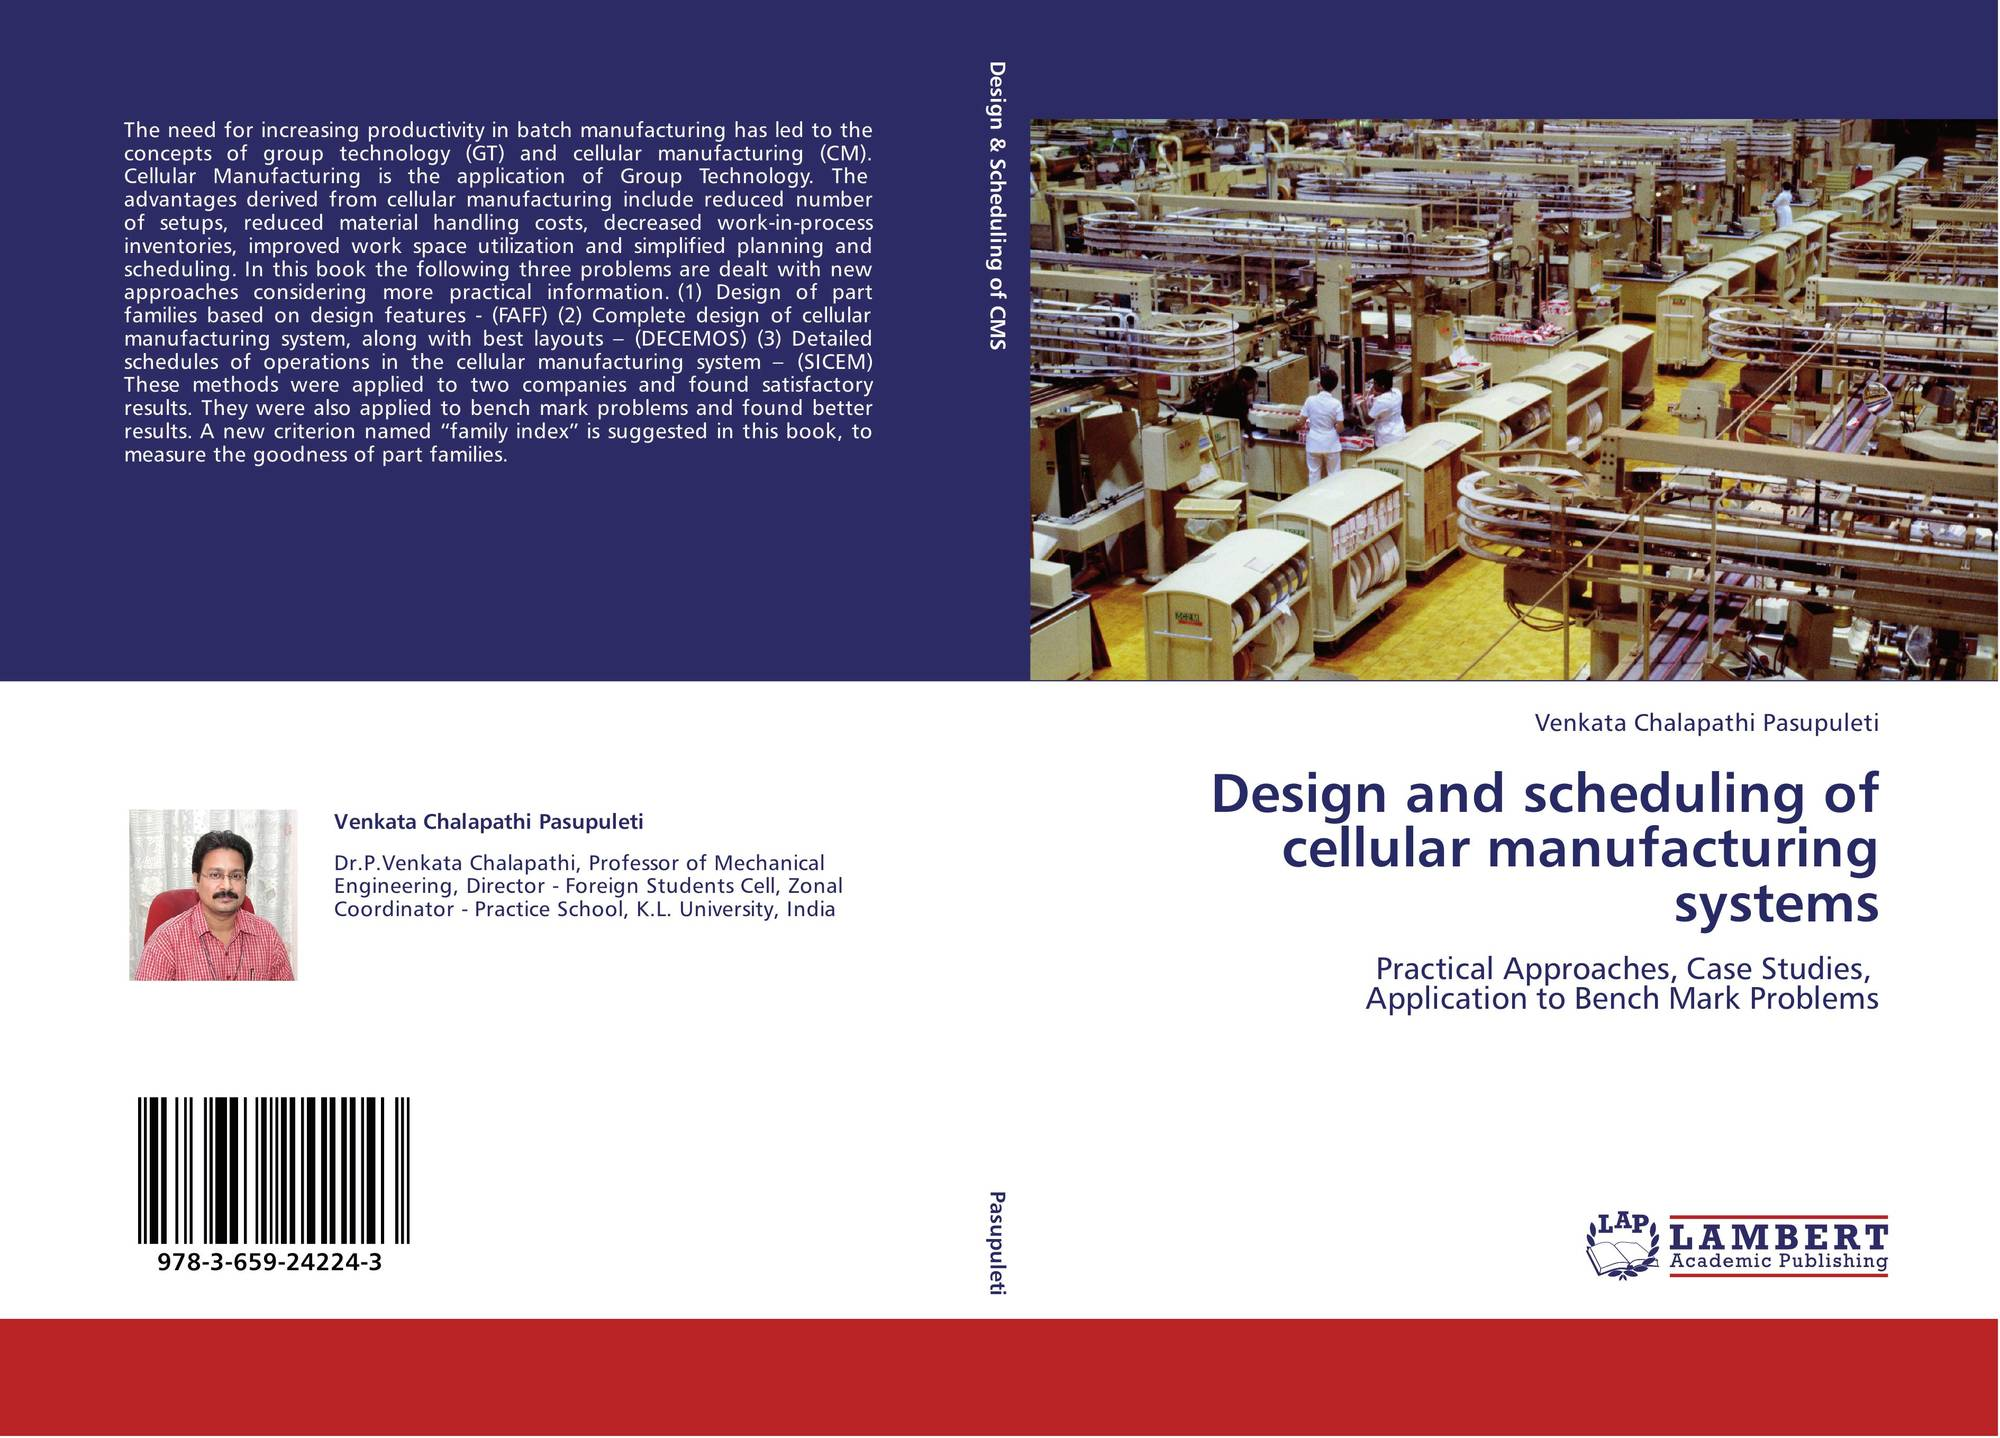 cellular manufacturing system Cellular manufacturing is a manufacturing approach that challenges the traditional job shop approach for organizing a factory in the traditional job shop, manufacturing is organized by process or department – each department specializes in one or more manufacturing processes such as drilling, metal cutting, painting, welding, assembly, etc.